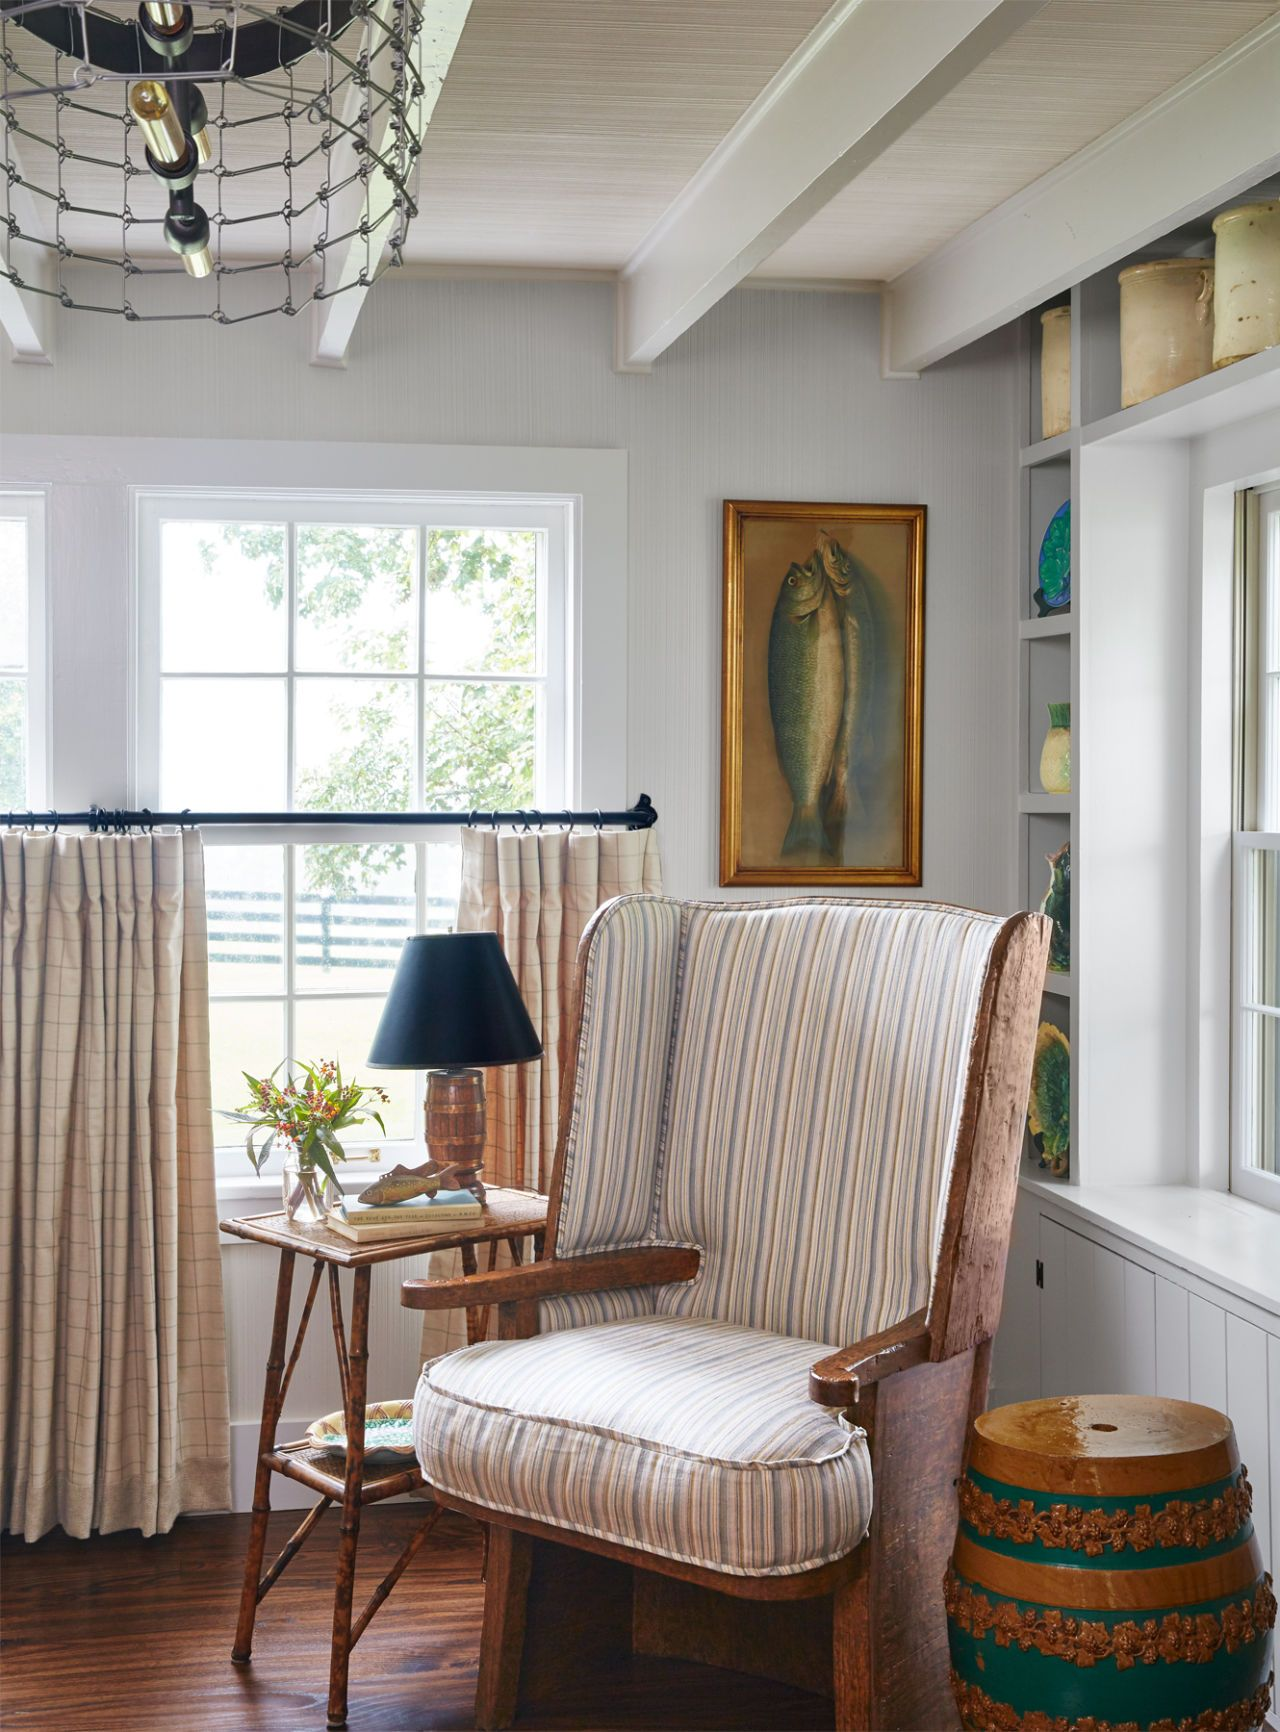 bedroom chair design ideas image desk disassembly landy gardner tennessee farmhouse - cozy and colorful decorating